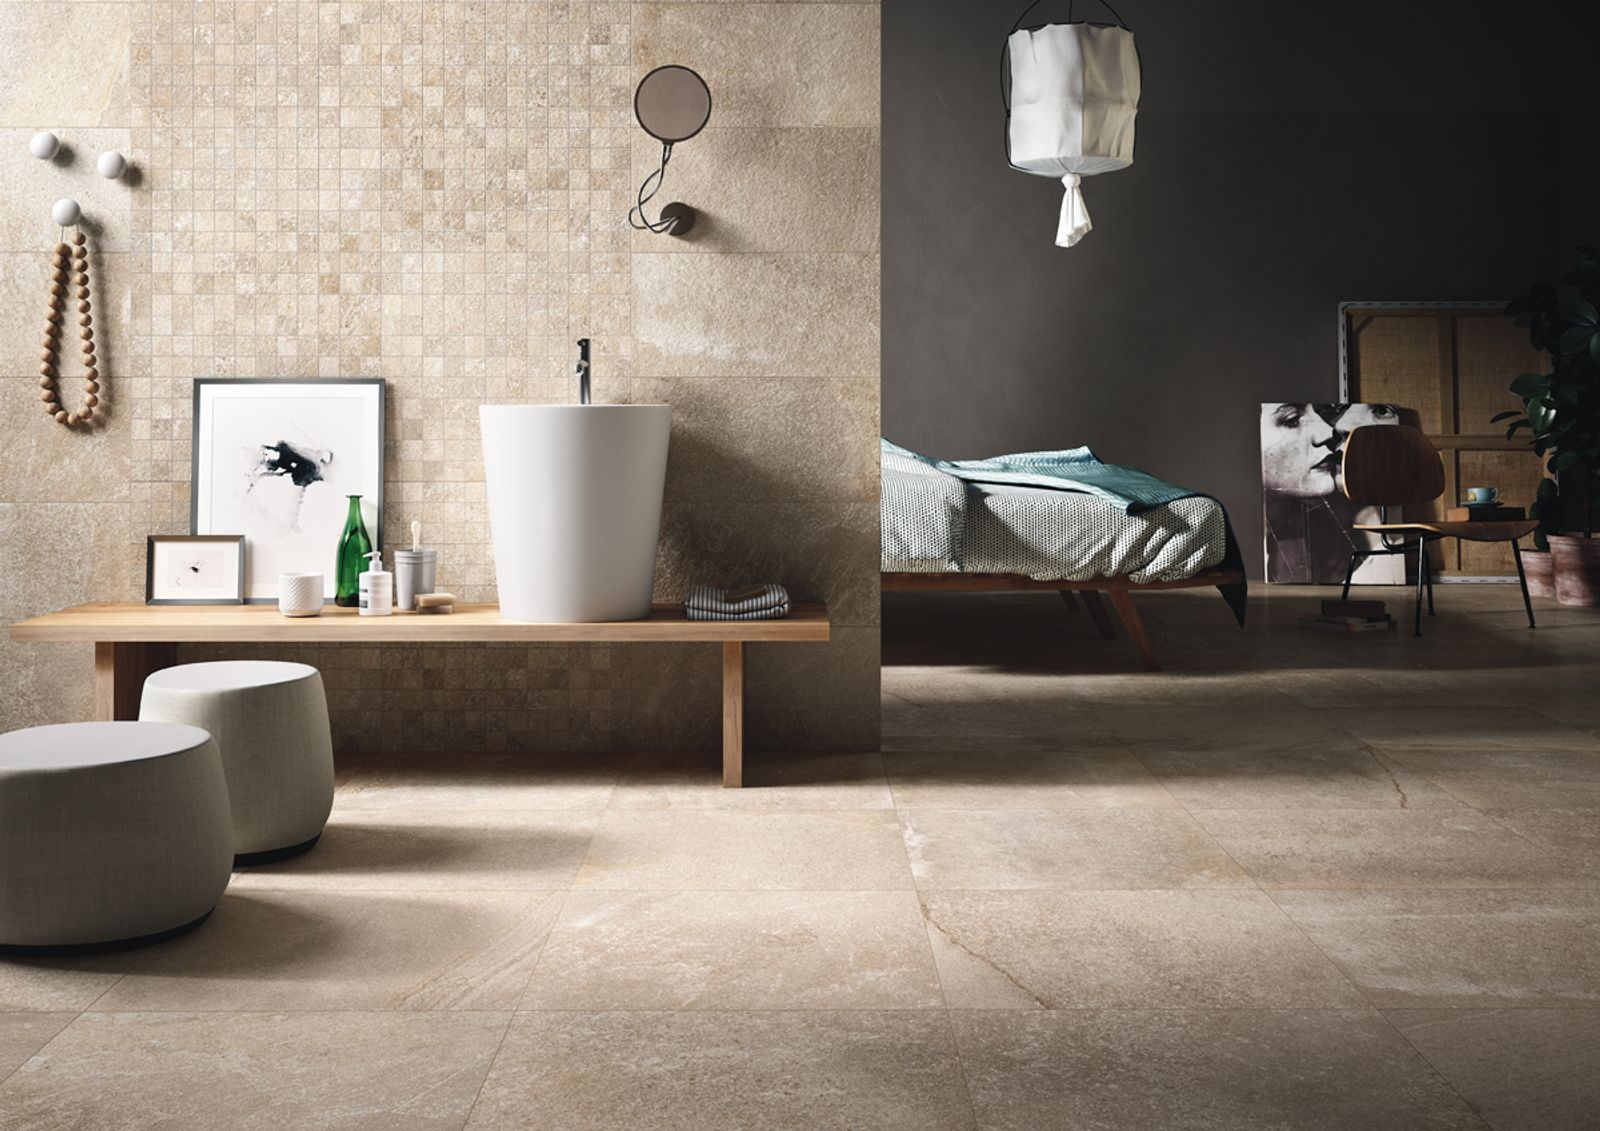 A new material inspired by the sedimentary dolomitic rock from the Limestone family, found in the Appalachian Mountains in North America. A stone with a rugged appeal that combines quartzite and porphyry and recalls the same subtle shades that  appear in nature, from grey to brown to black.  - AM BRIXSTONE 1 - Imola Ceramica